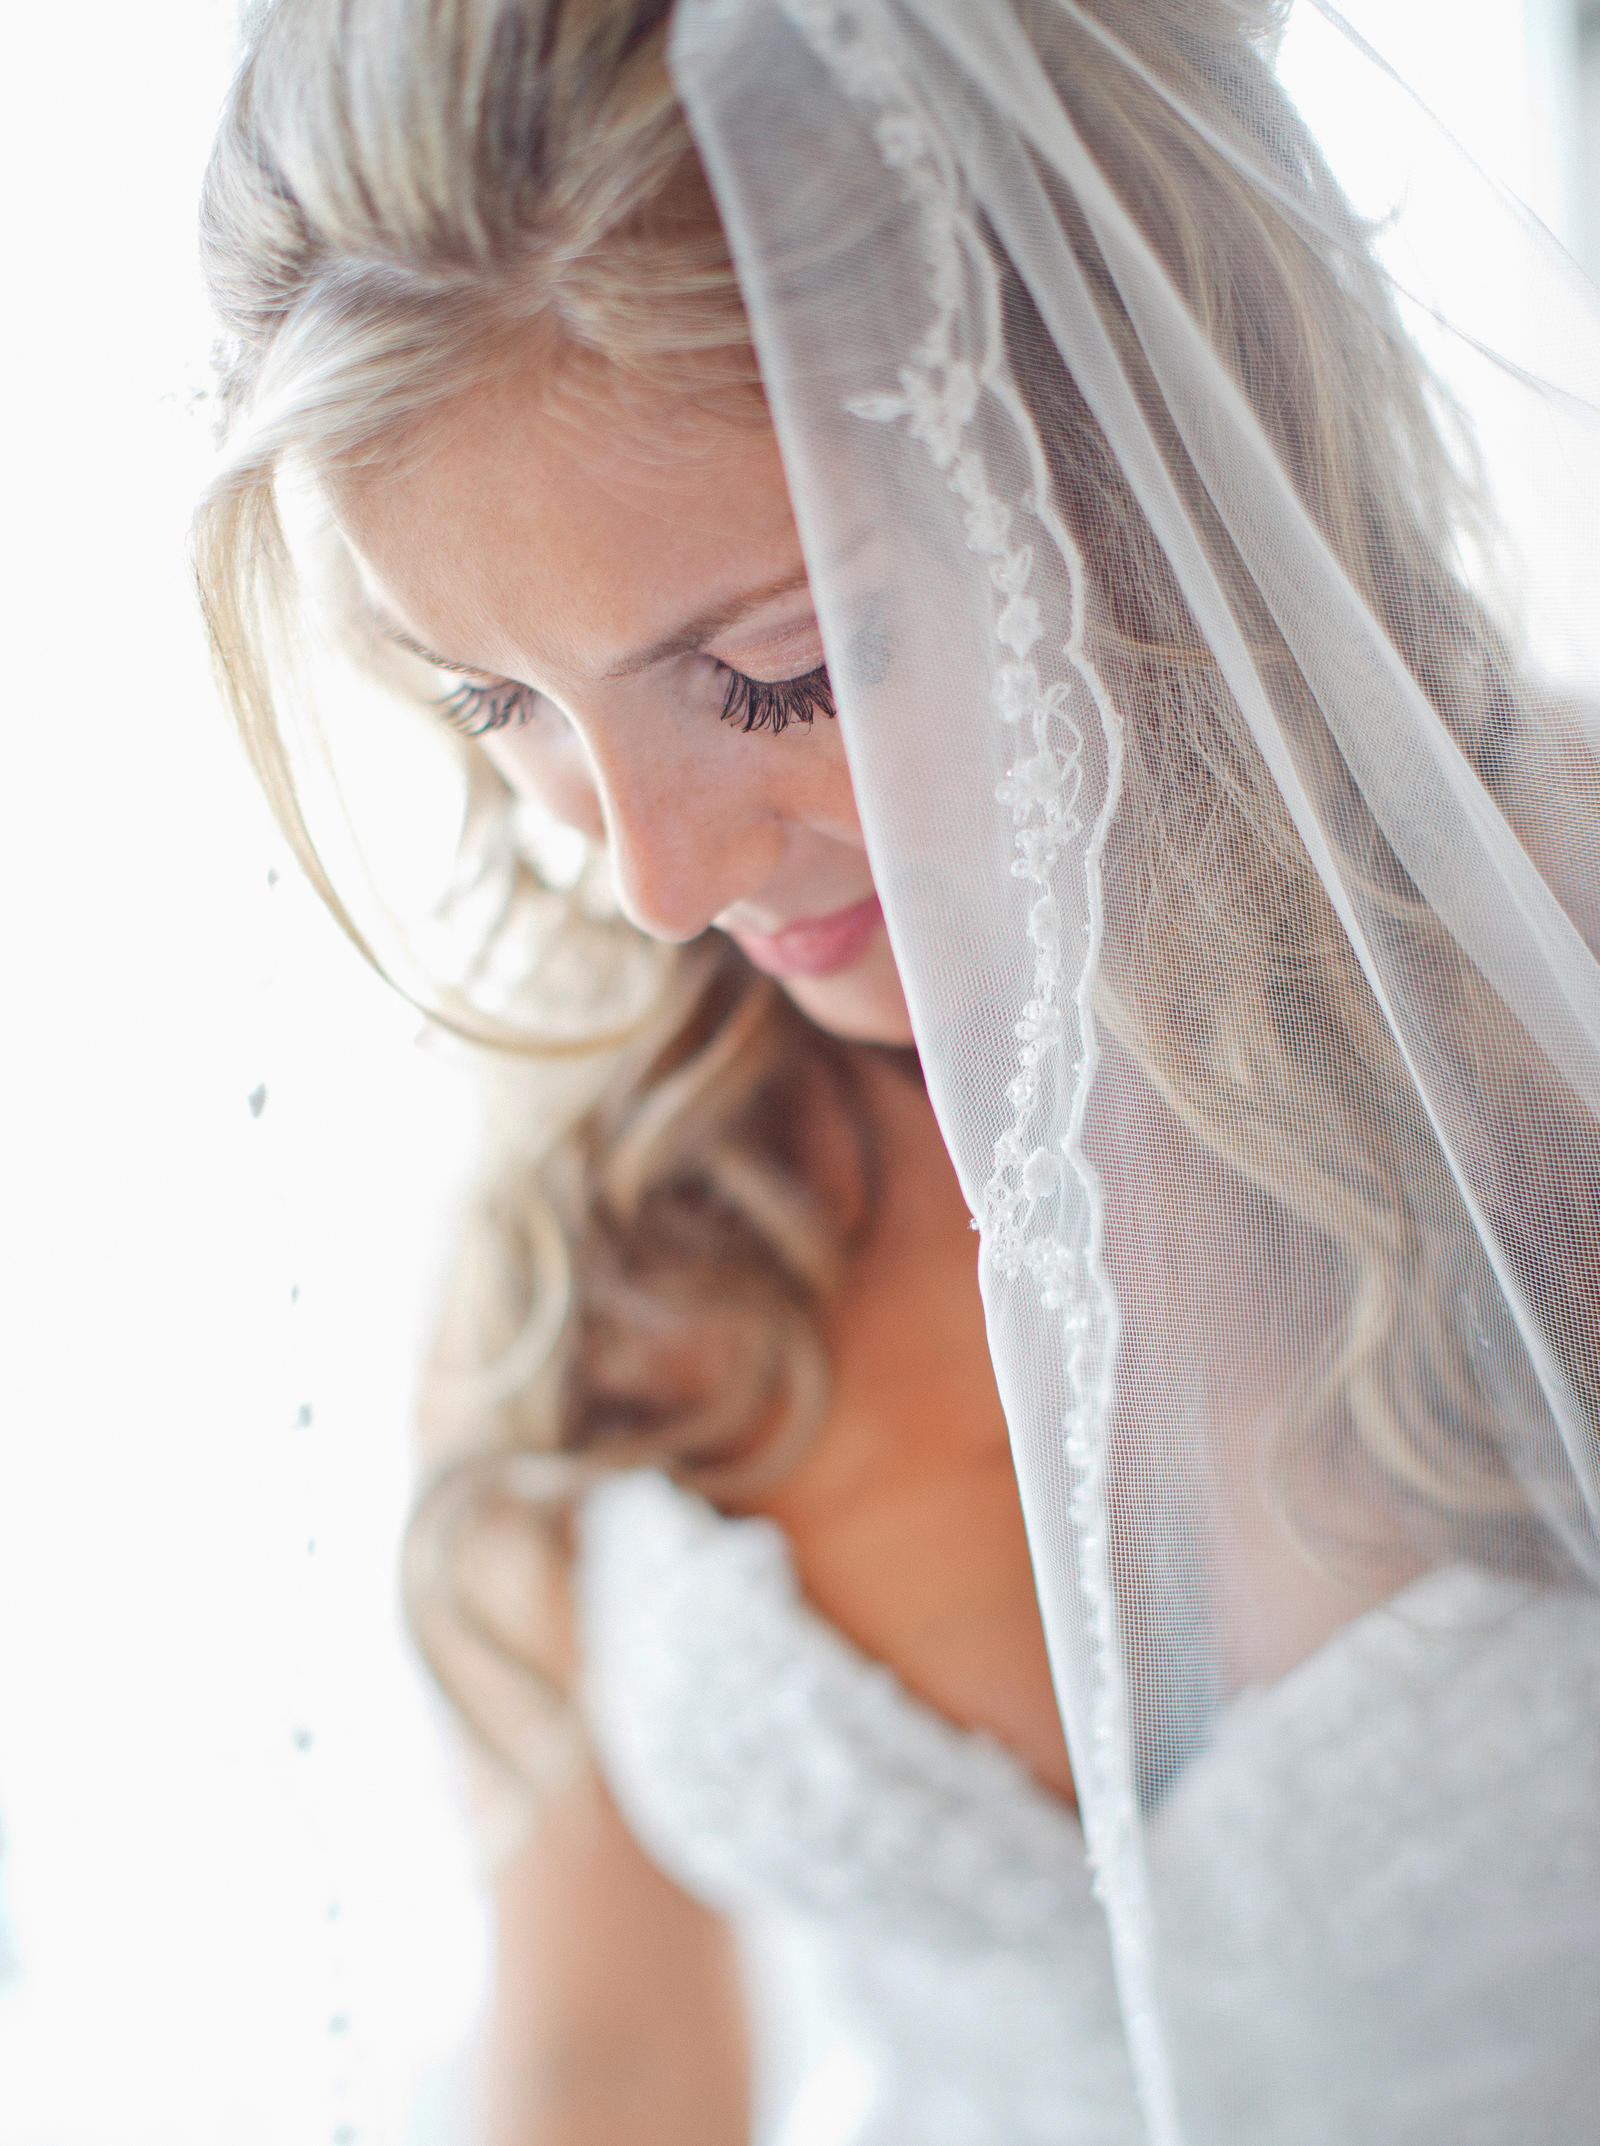 Wedding Photography | A closeup of a bride in her wedding dress.